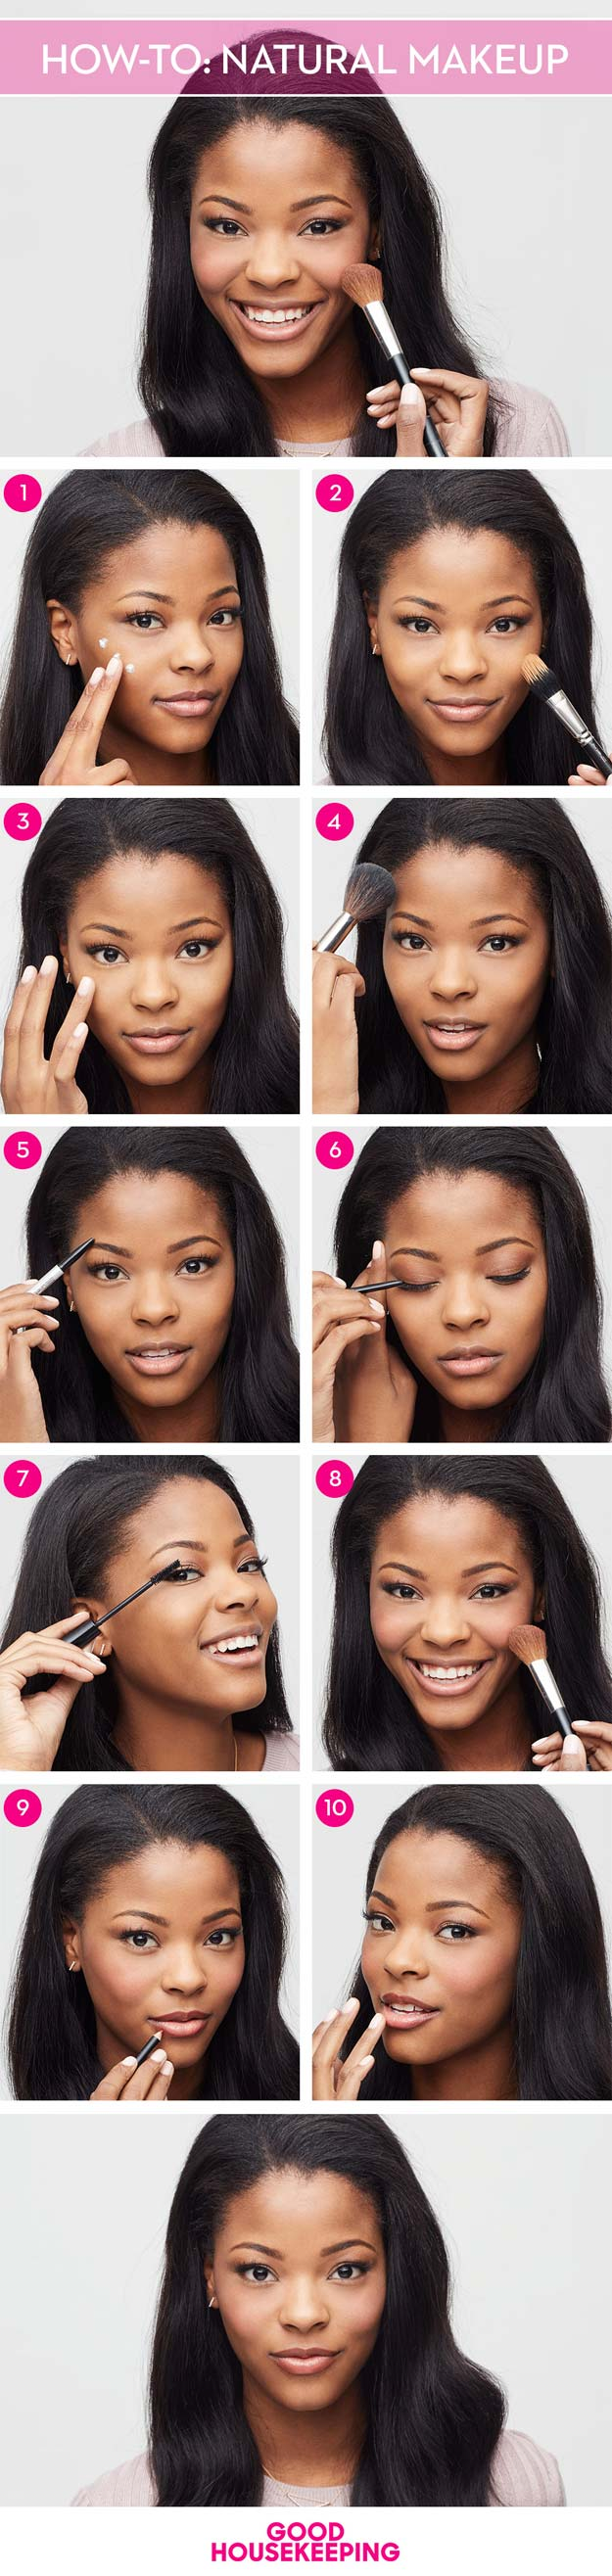 Best Makeup Tutorials for Teens -How to Master the All-Natural Look - Easy Makeup Ideas for Beginners - Step by Step Tutorials for Foundation, Eye Shadow, Lipstick, Cheeks, Contour, Eyebrows and Eyes - Awesome Makeup Hacks and Tips for Simple DIY Beauty - Day and Evening Looks http://diyprojectsforteens.com/makeup-tutorials-teens